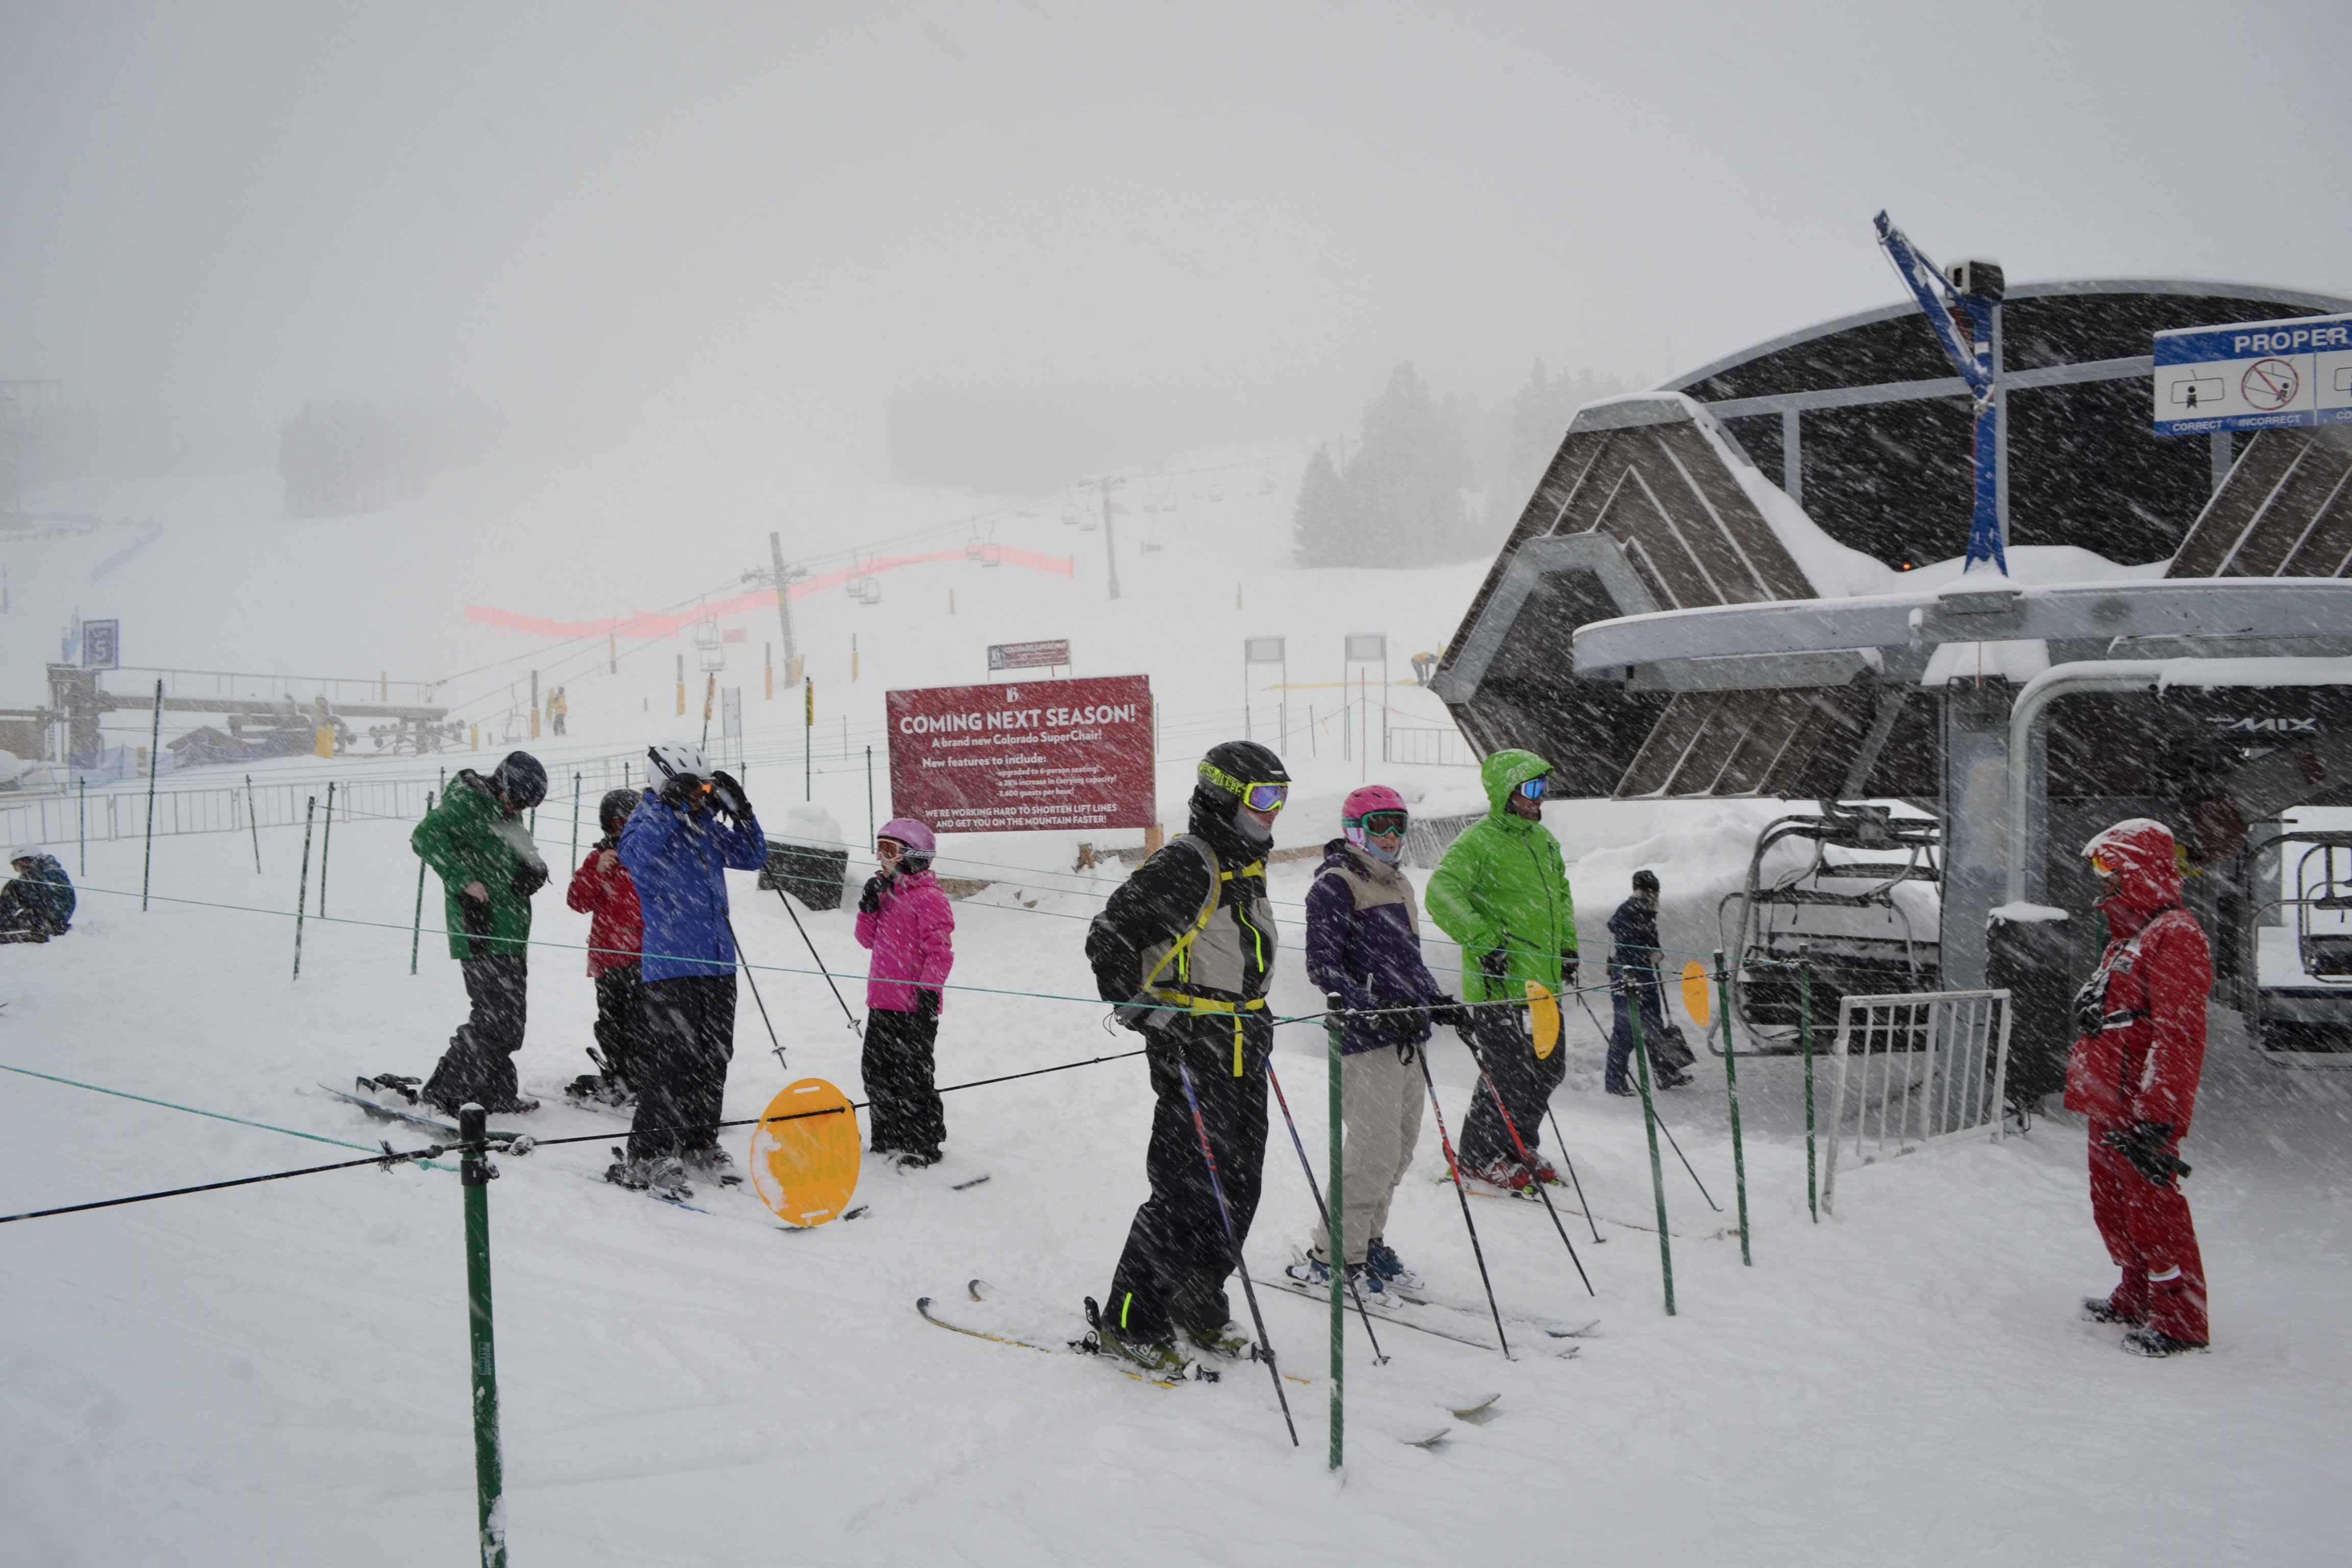 Guests line up early to ski pow